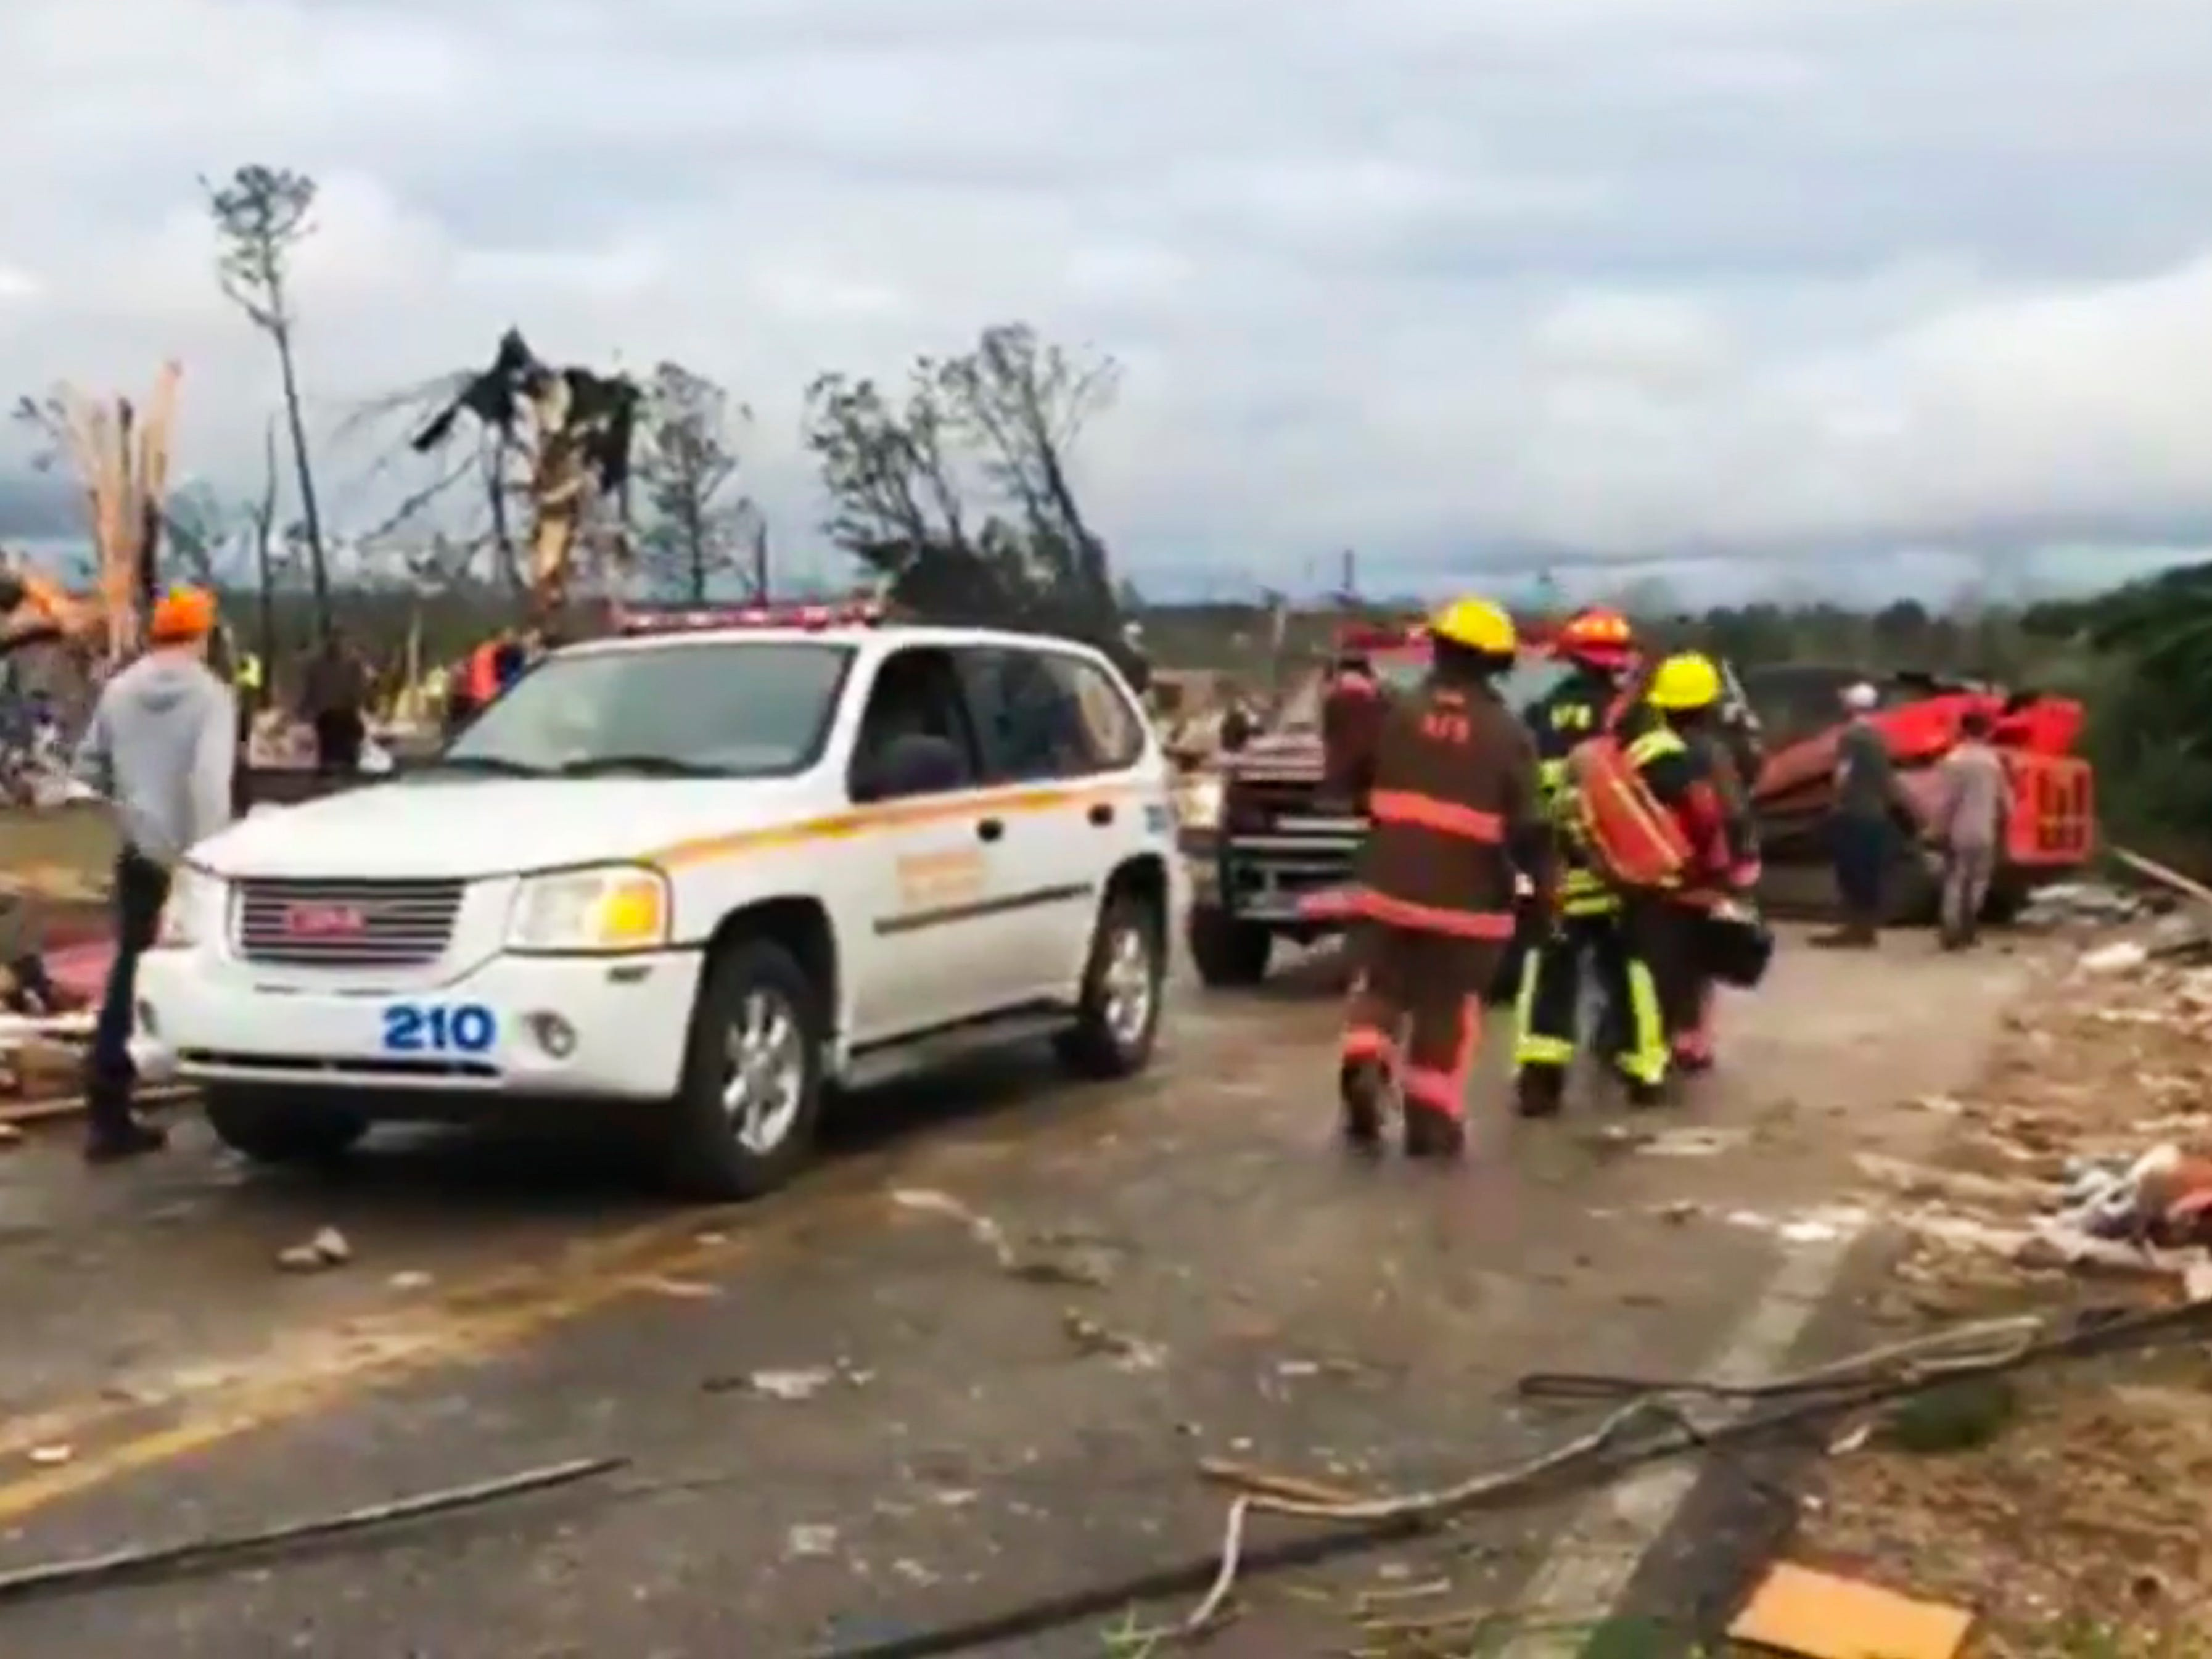 Emergency responders work in the scene amid debris in Lee County, Ala., after what appeared to be a tornado struck in the area Sunday, March 3, 2019. Severe storms destroyed mobile homes, snapped trees and left a trail of destruction amid weather warnings extending into Georgia, Florida and South Carolina, authorities said. (WKRG-TV via AP) ORG XMIT: WKRG702